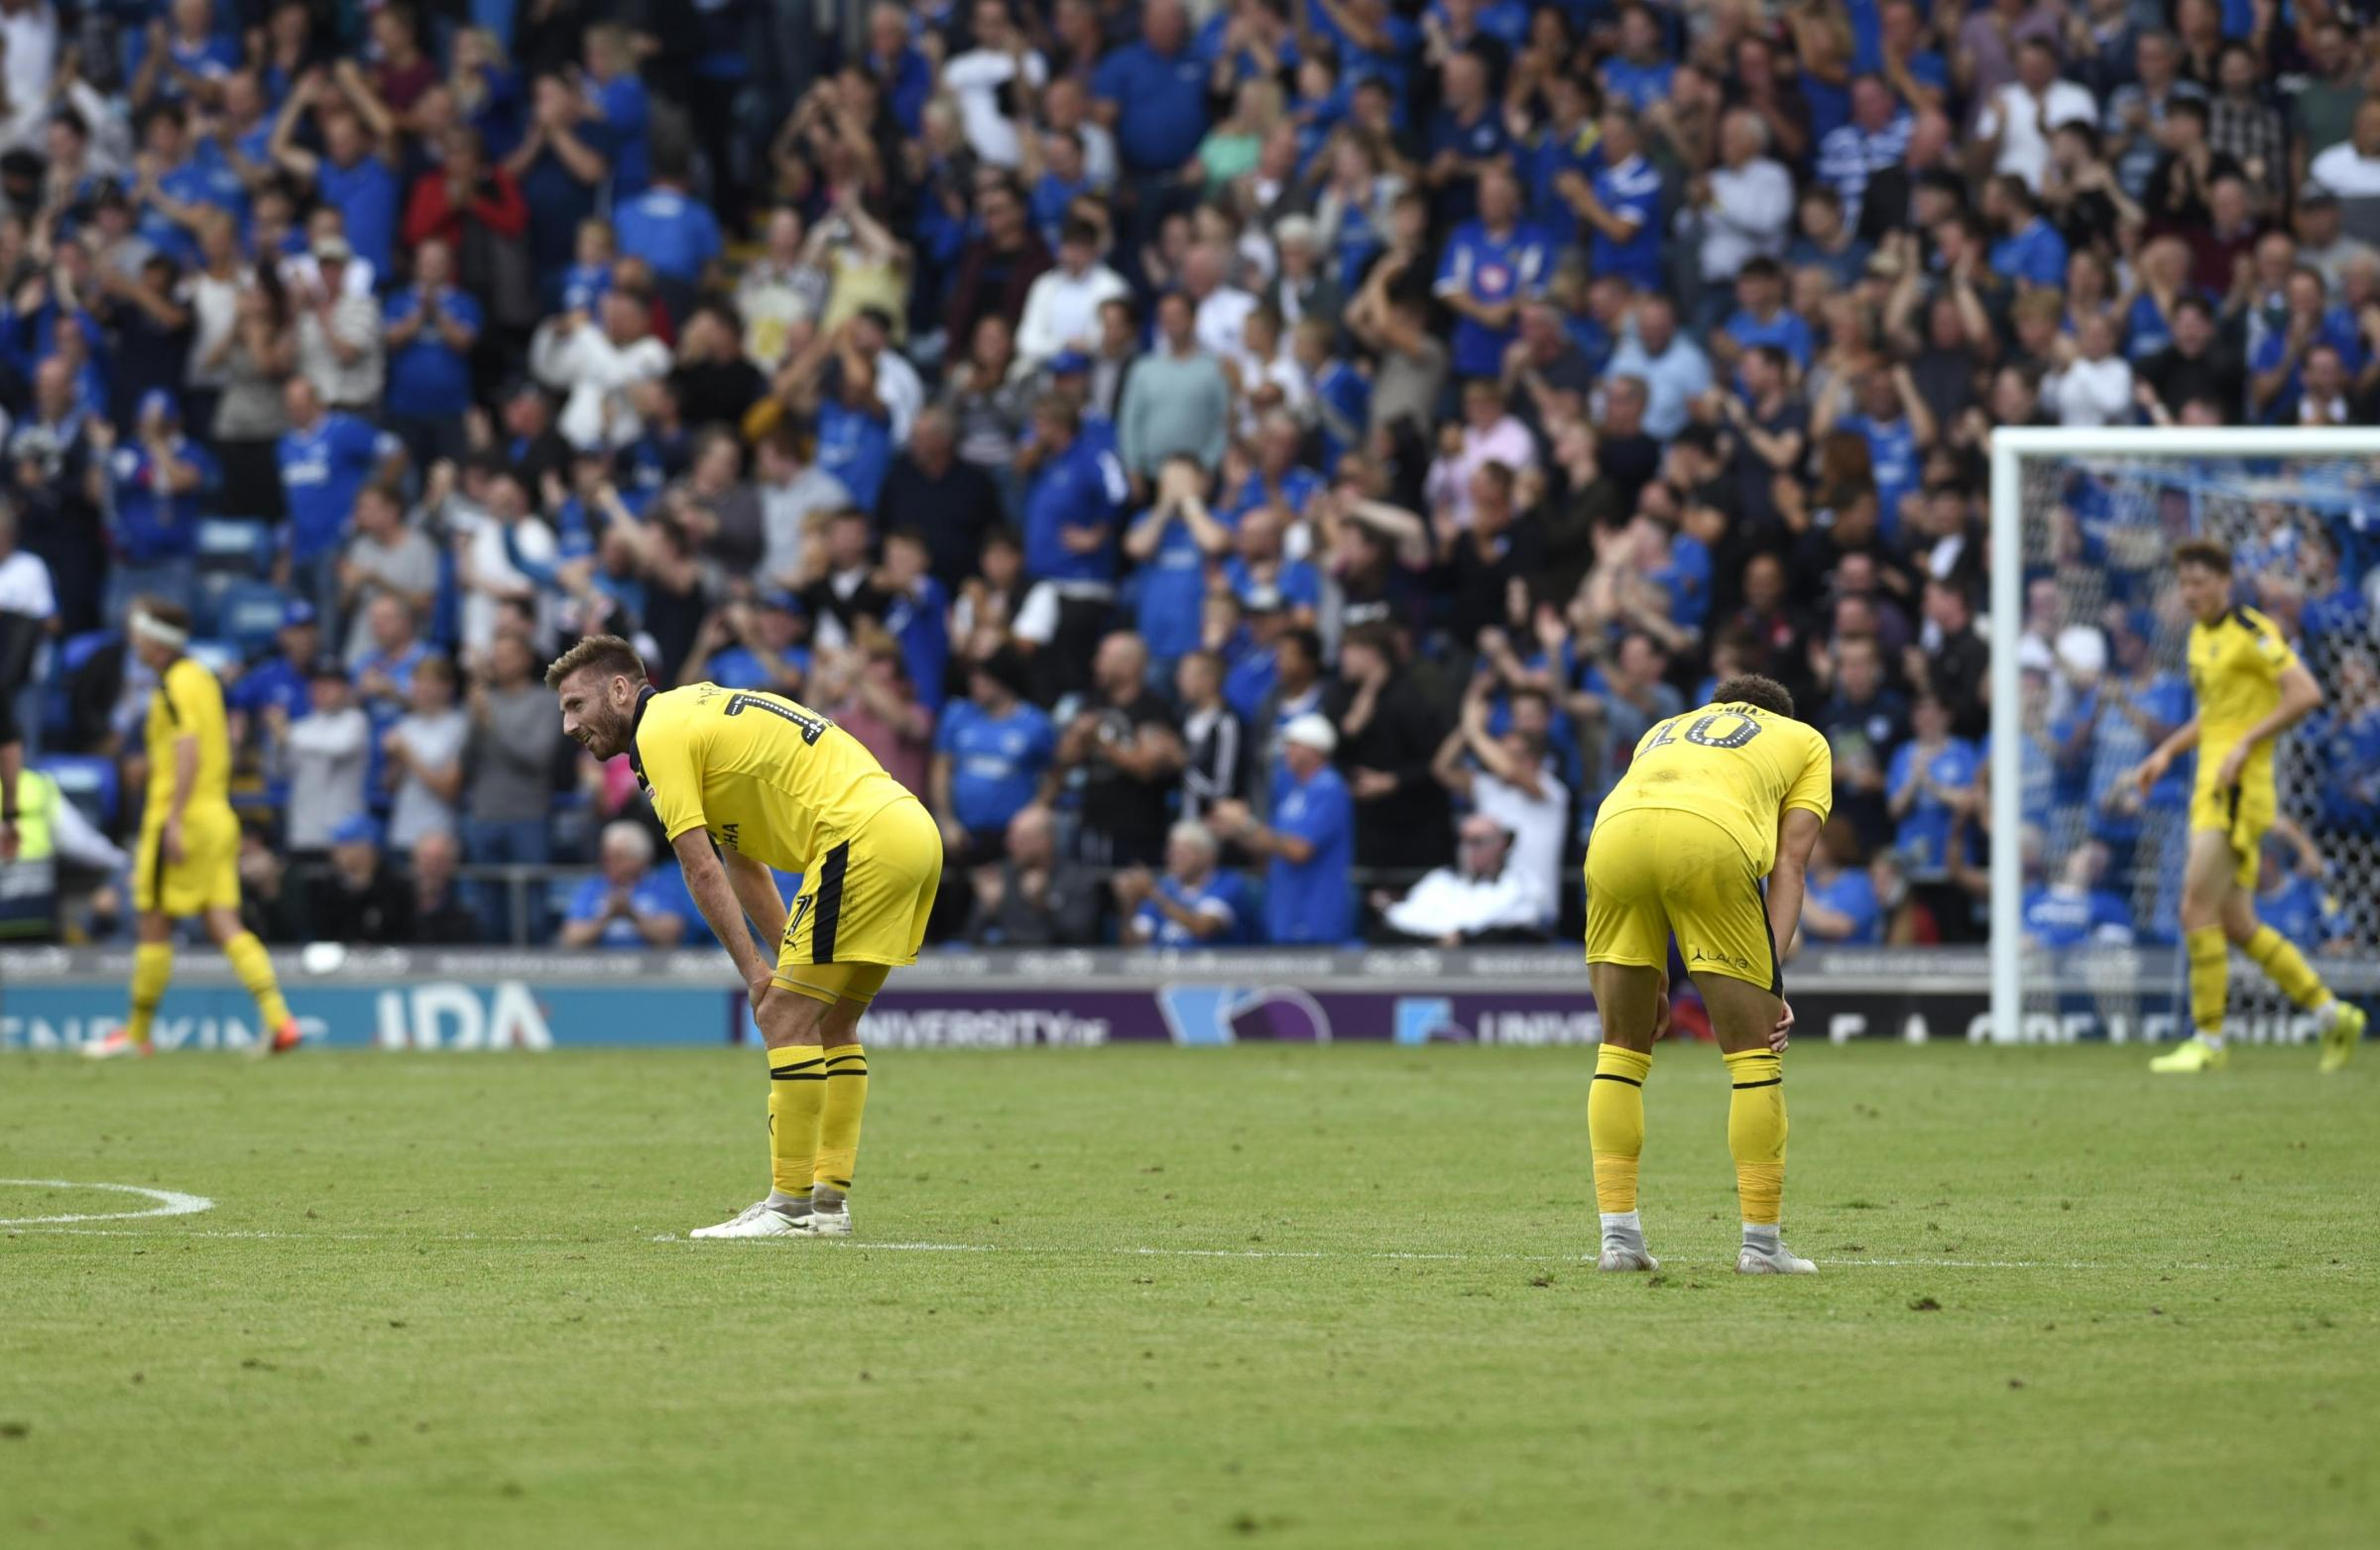 DOWN IN THE DUMPS: James Henry and Marcus Browne after Portsmouth score their fourth goal Picture: David Fleming